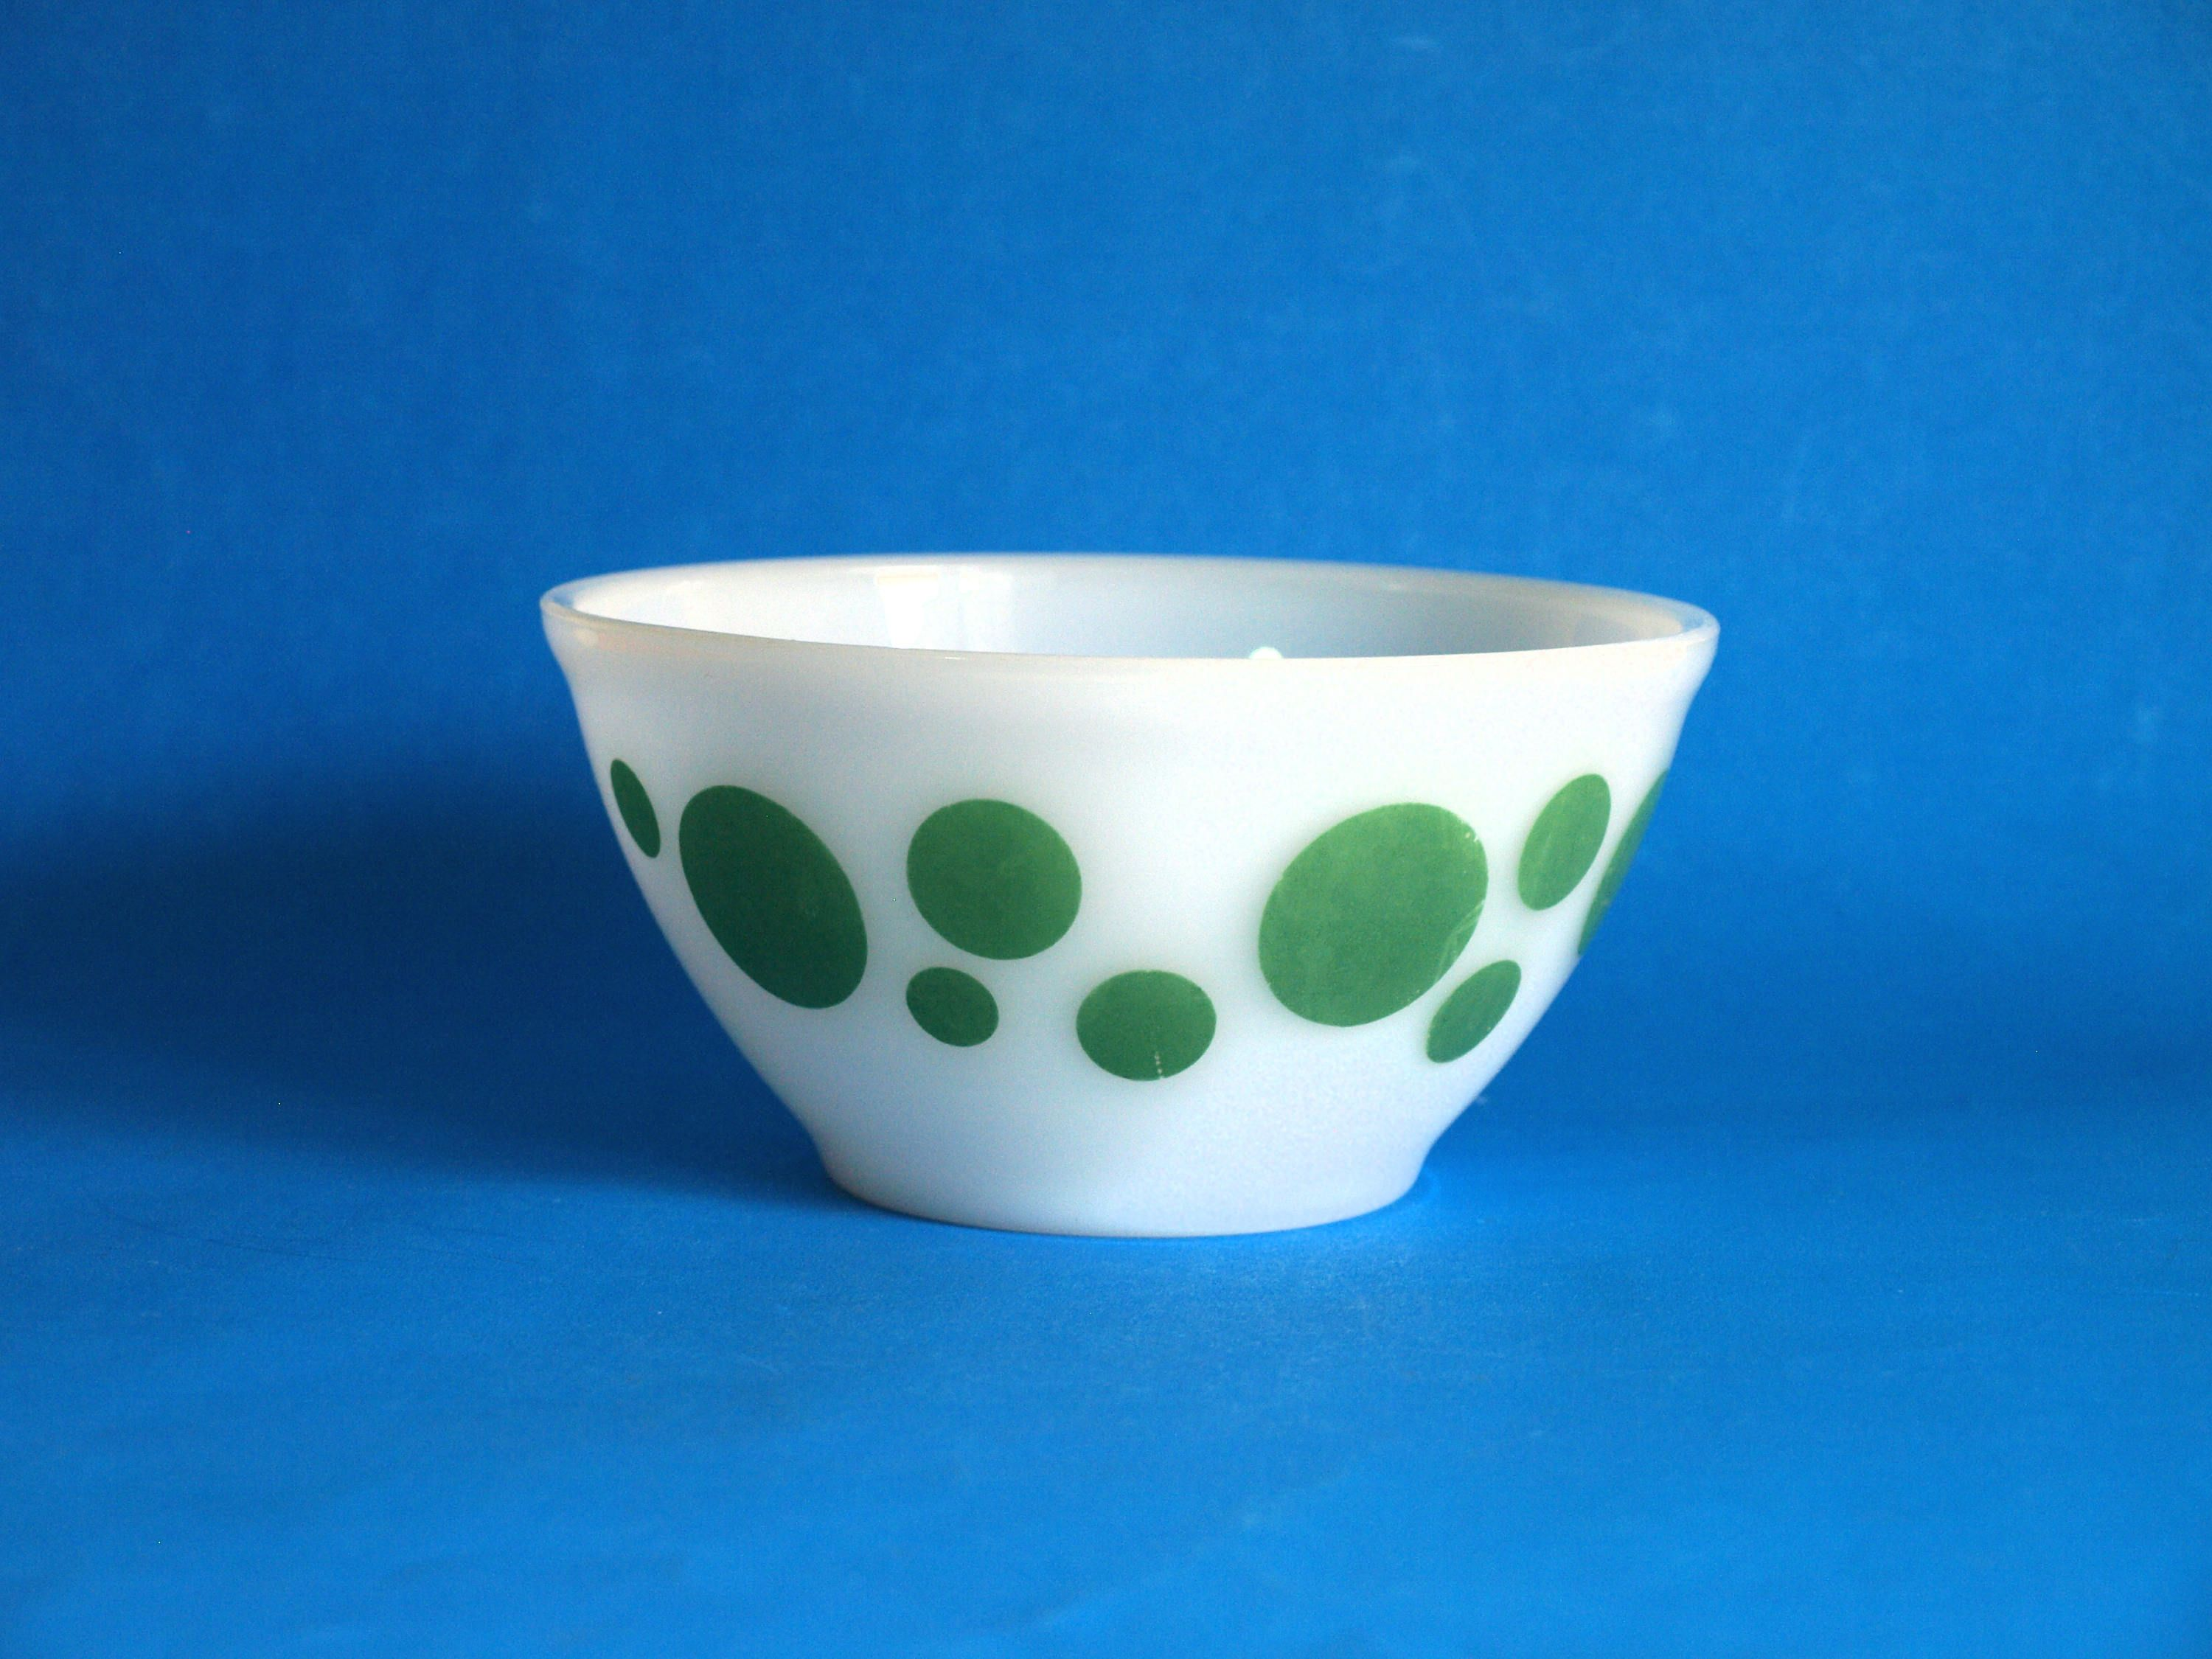 Agee Crown Pyrex Green Polka Dot Mixing Bowl - 60s 6\